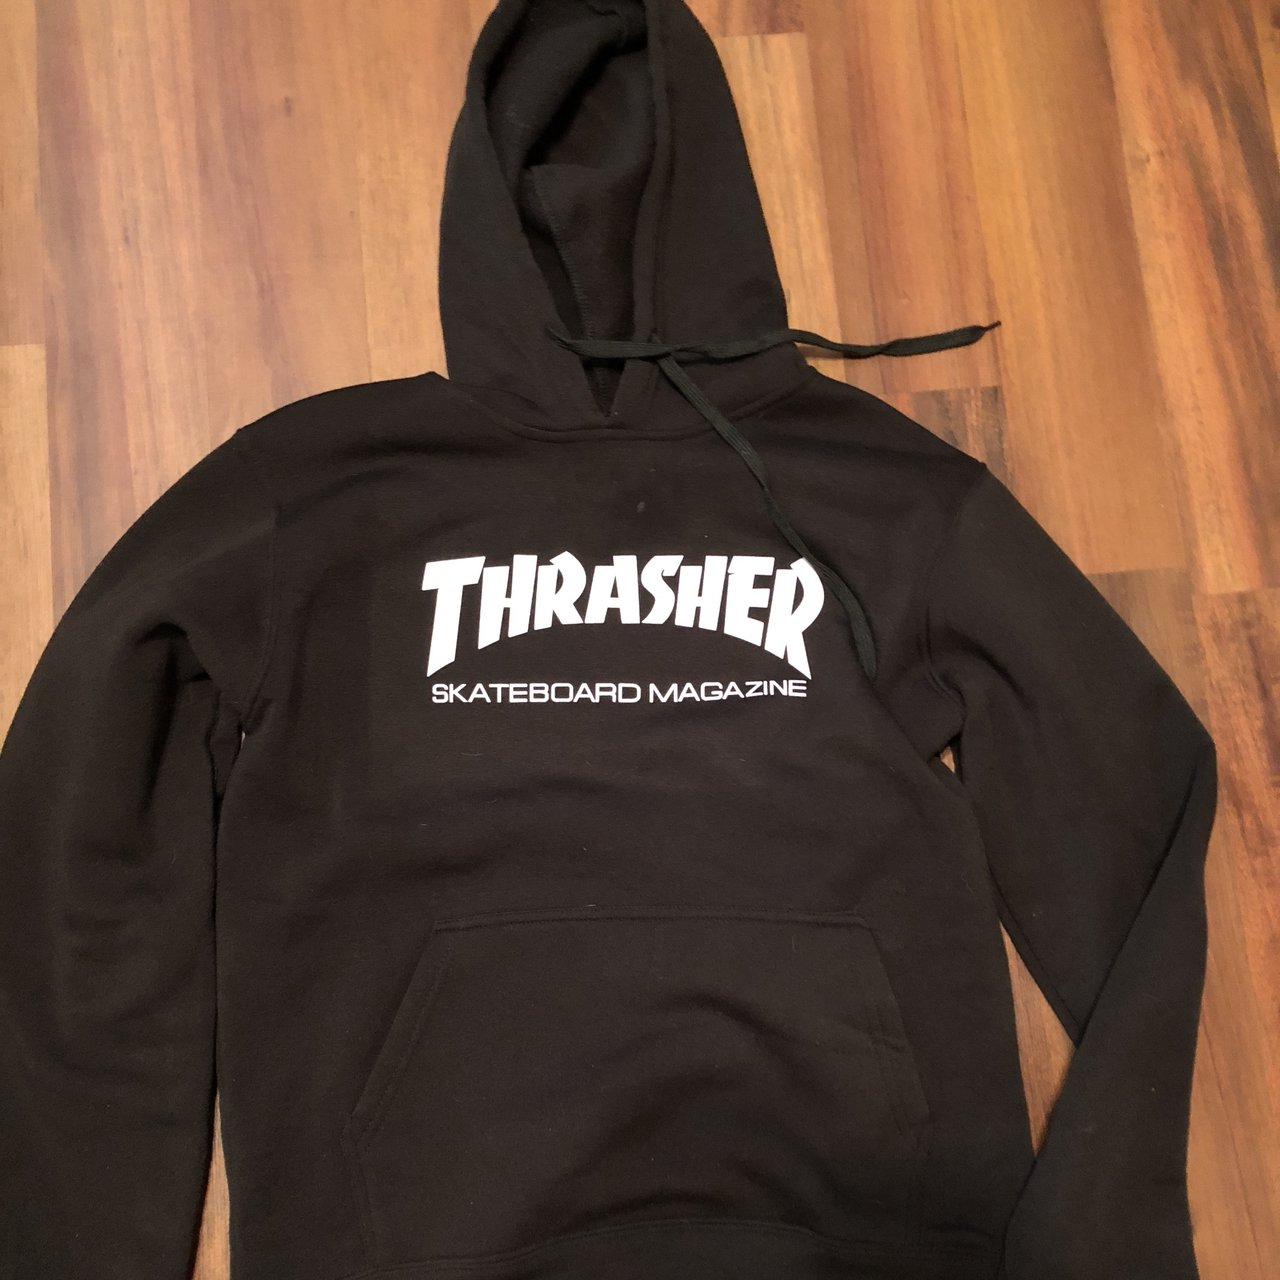 e10004f98314 Thrasher Hoodie Worn once been sitting it storage ever - Depop